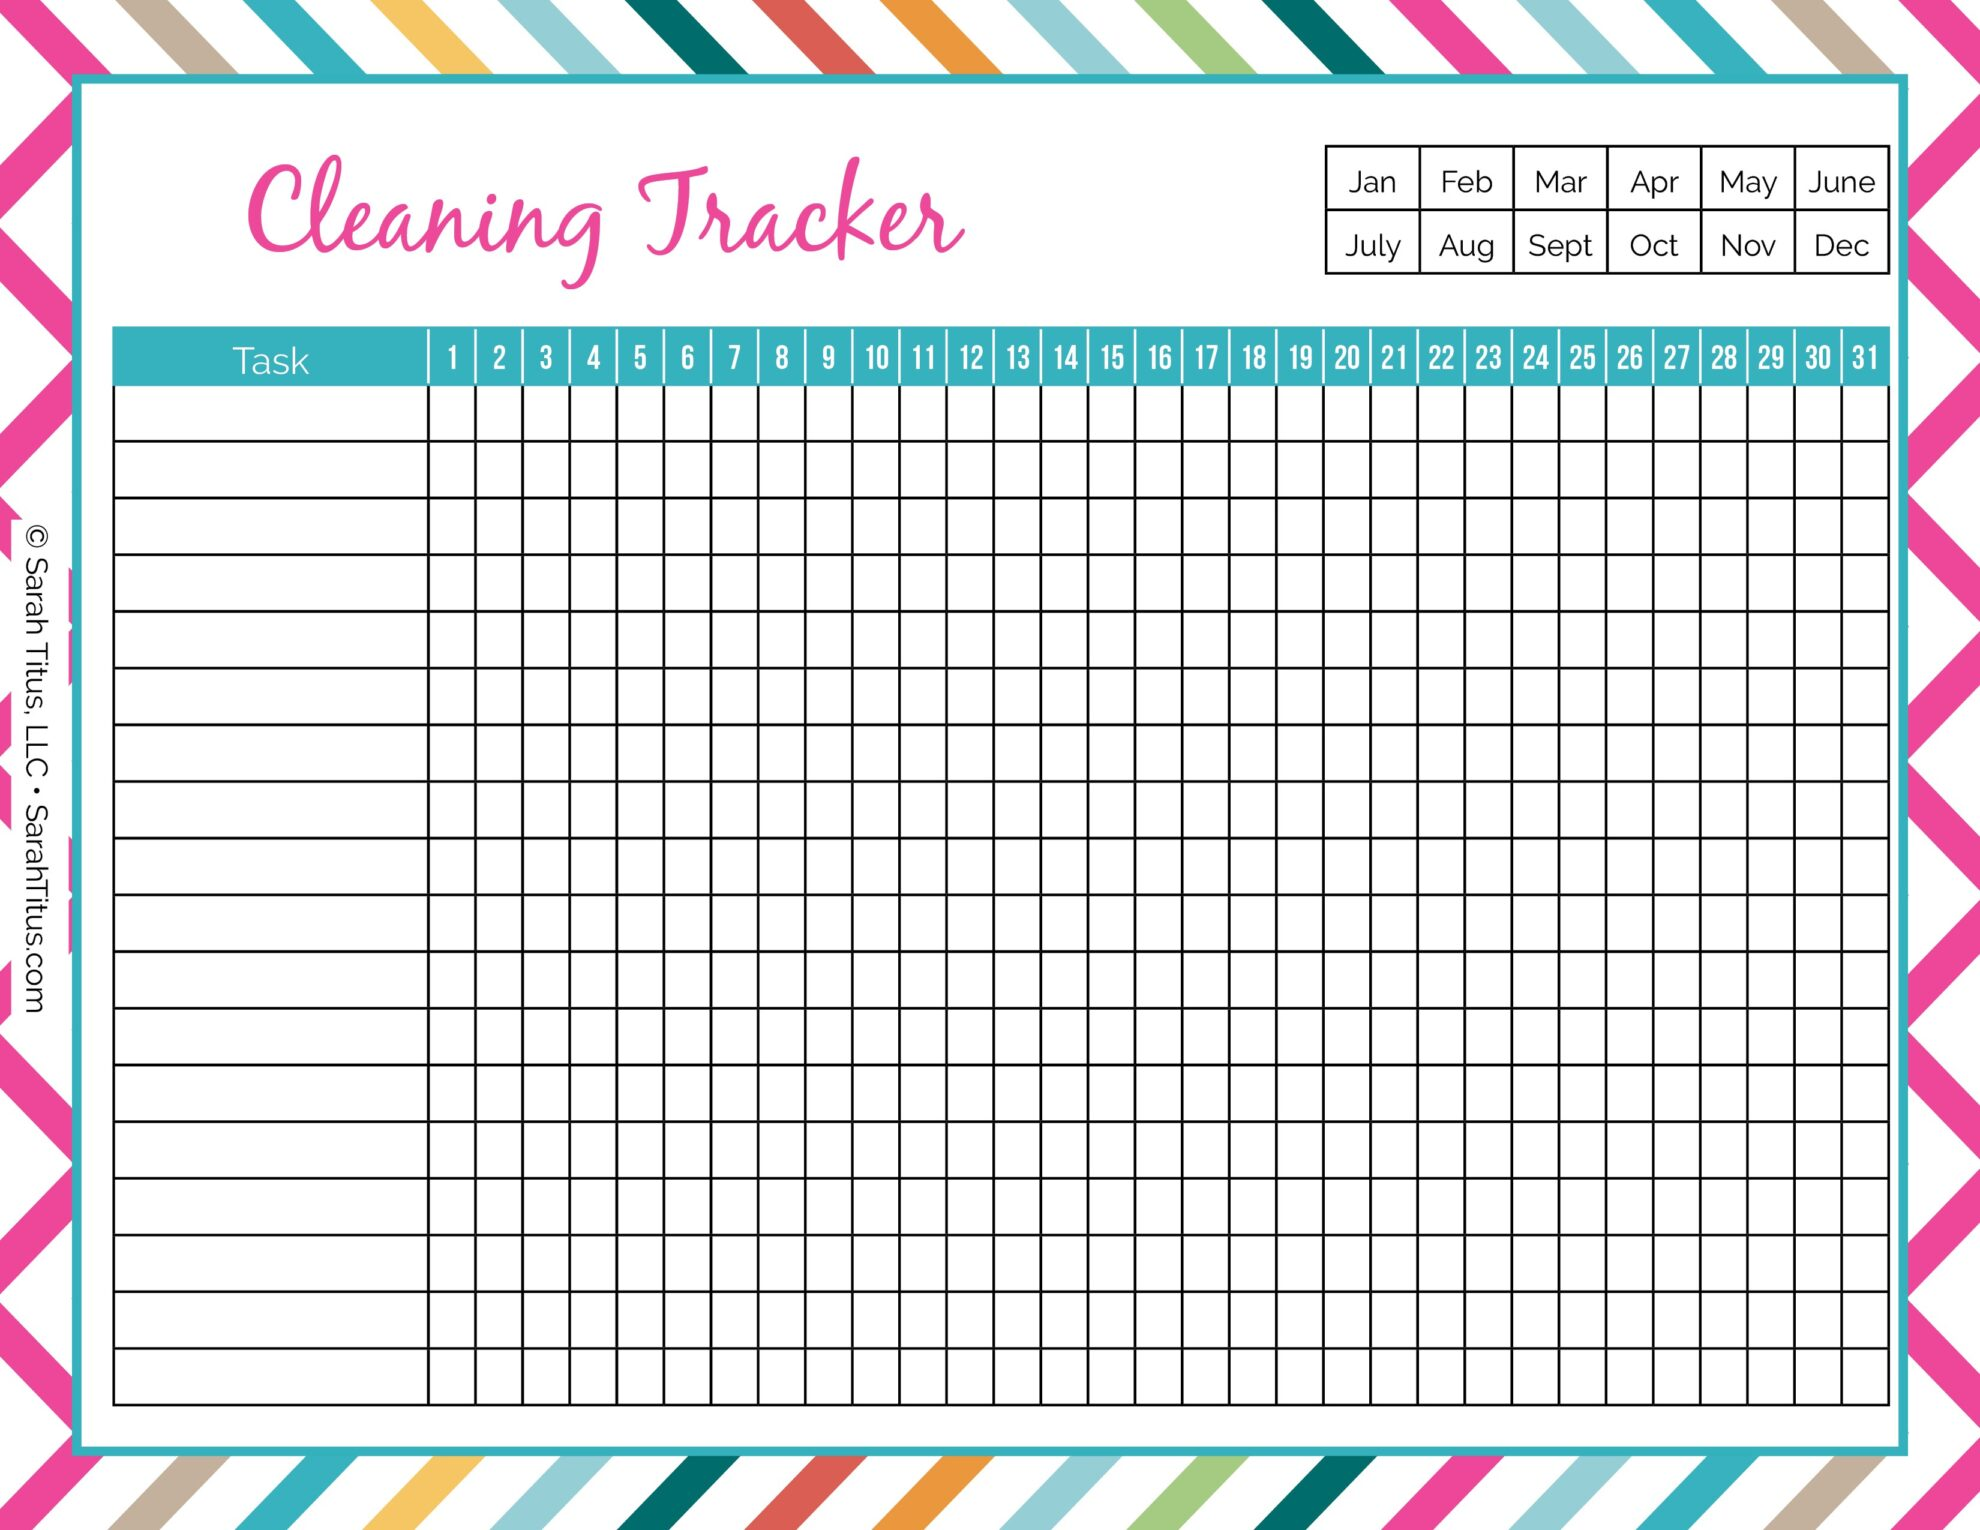 photograph regarding Free Printable Organizing Sheets identified as Cleansing Binder: Cleansing Tracker - Sarah Titus